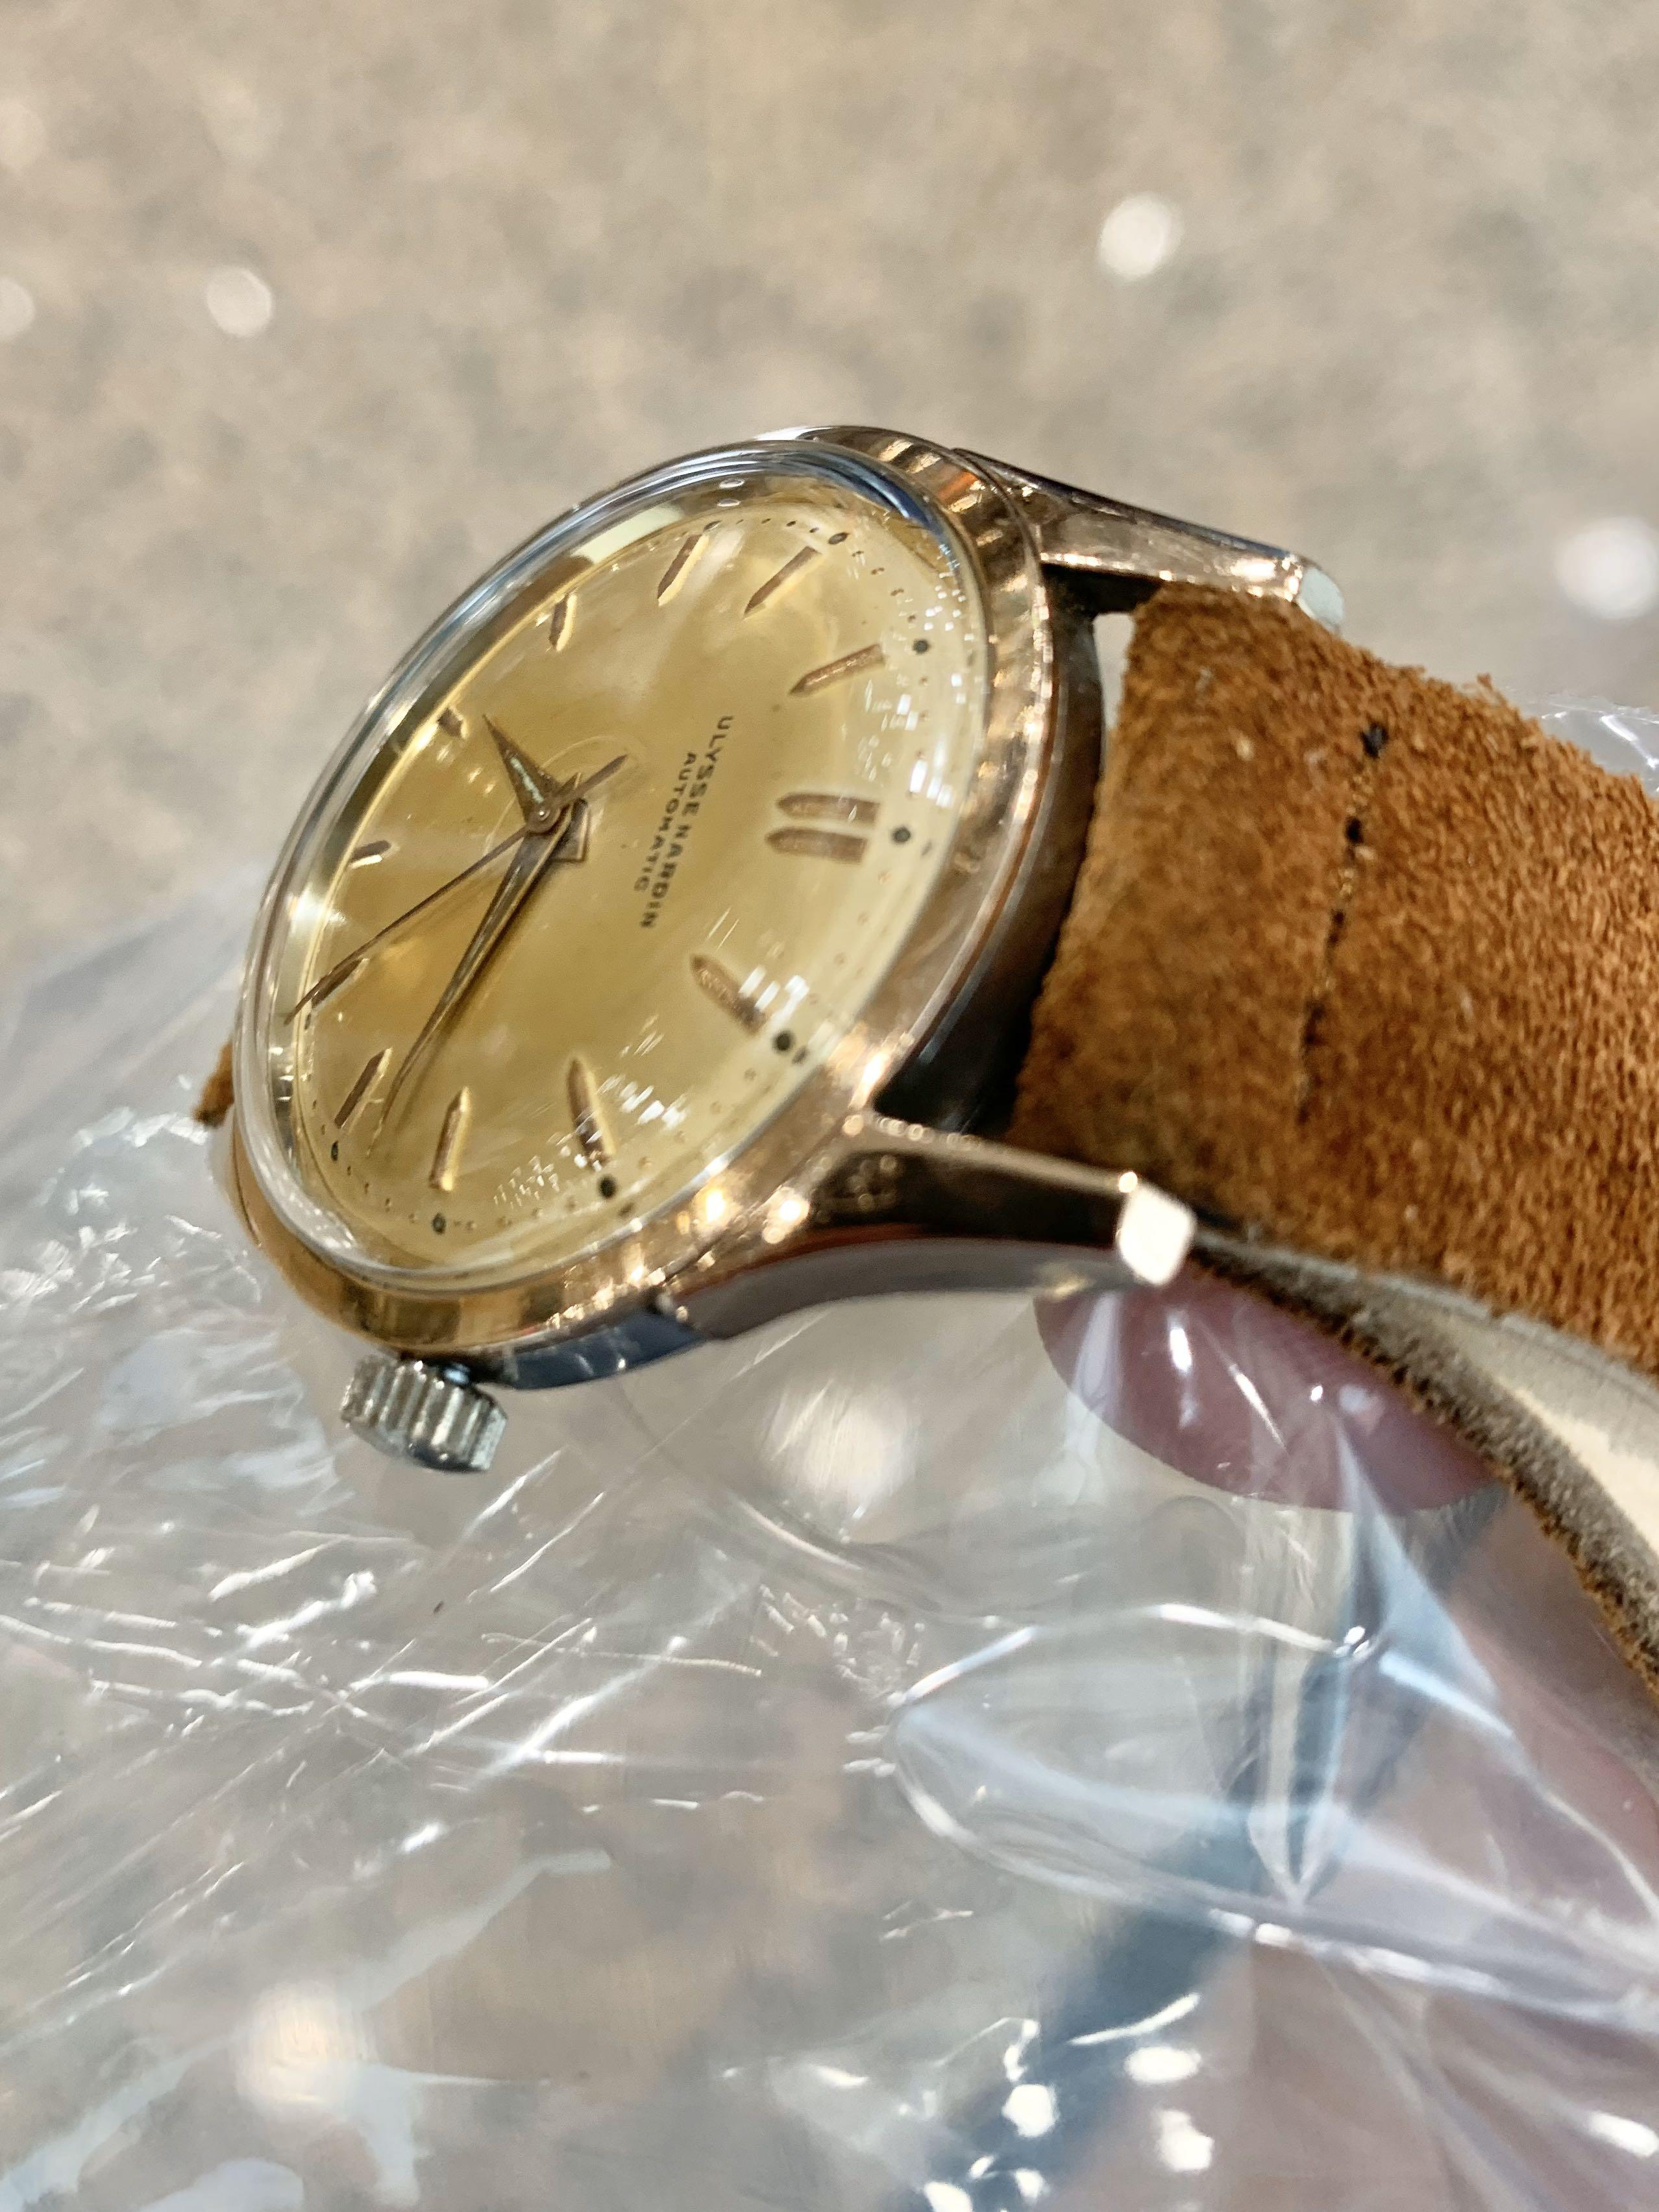 Authentic Ulysse Nardin Rose Gold Plated Lugs Stainless  Steel sides 36mm diameter Champagne Dial with box (good size for both ladies and men) (with original UN box, leather pouch, cloth, strap change tool, 5 straps, 2 RG buckles)(43mm lug-to-lug)